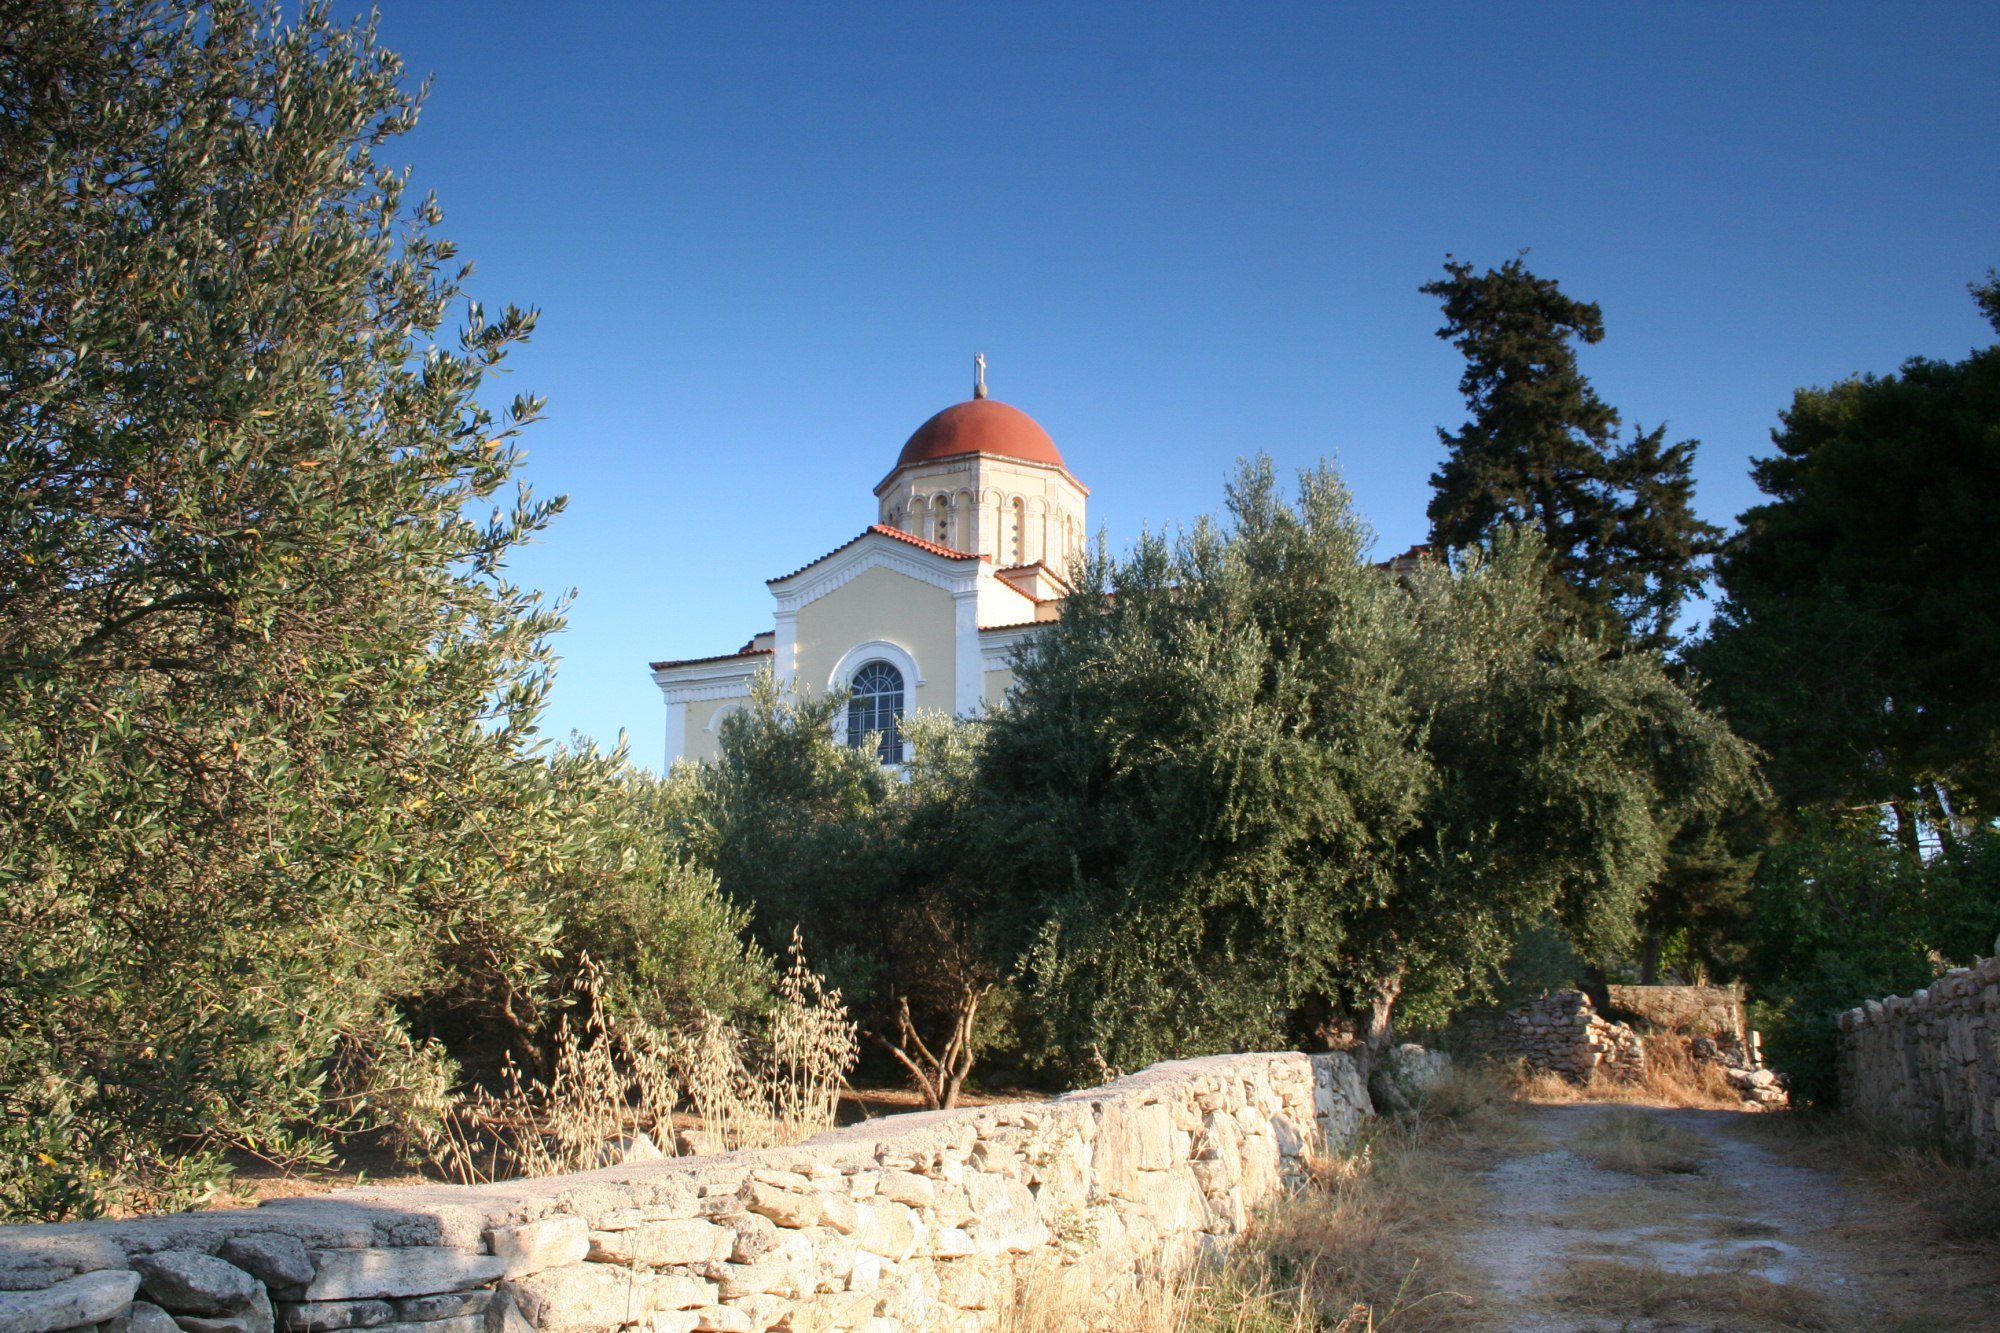 One of the two main churches